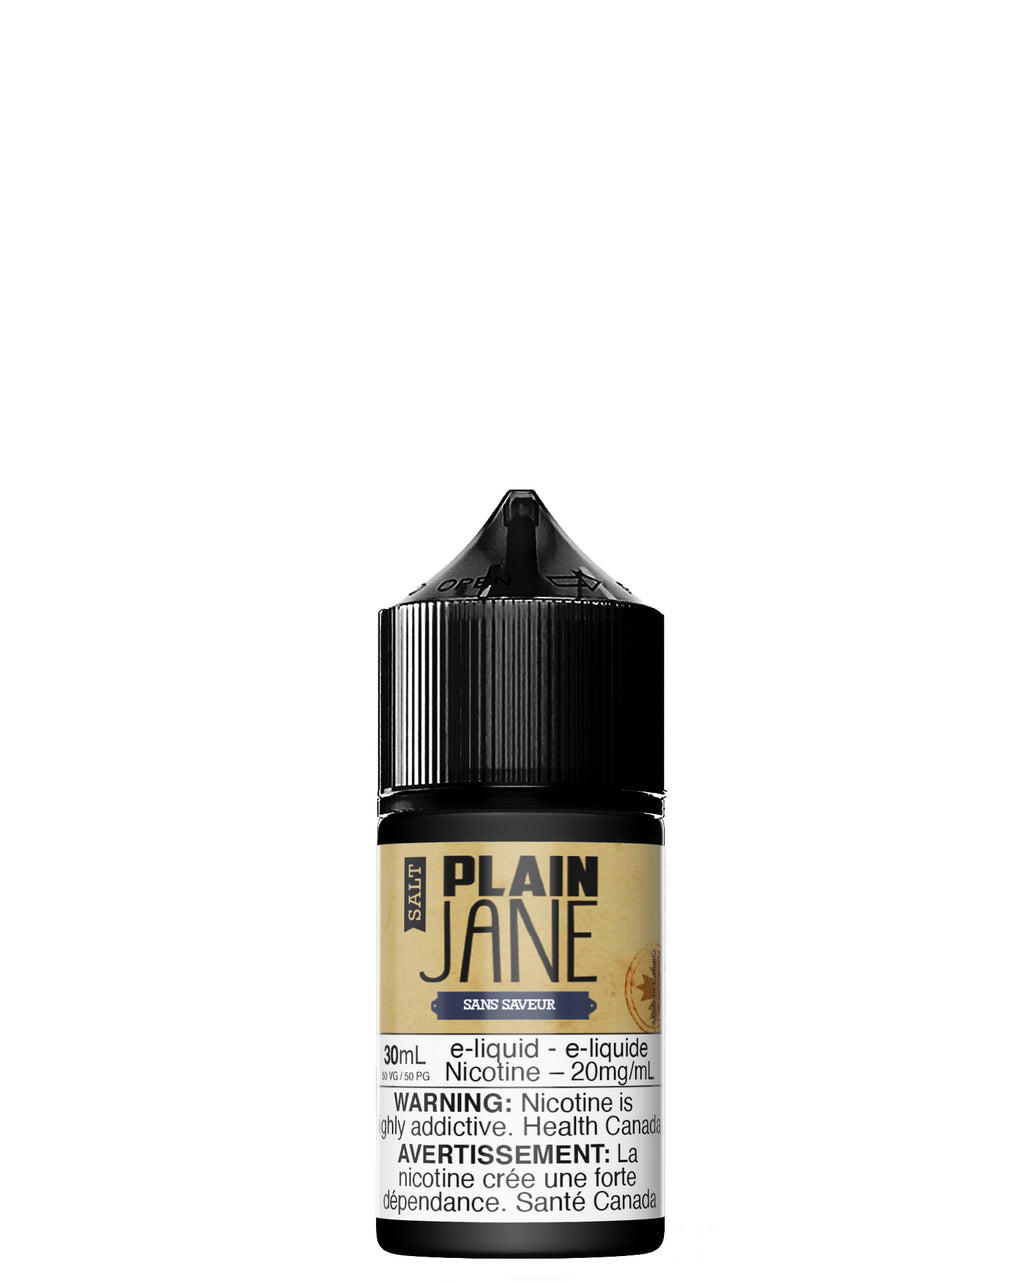 Plain Jane 30ml by Vapeur Express SALTS